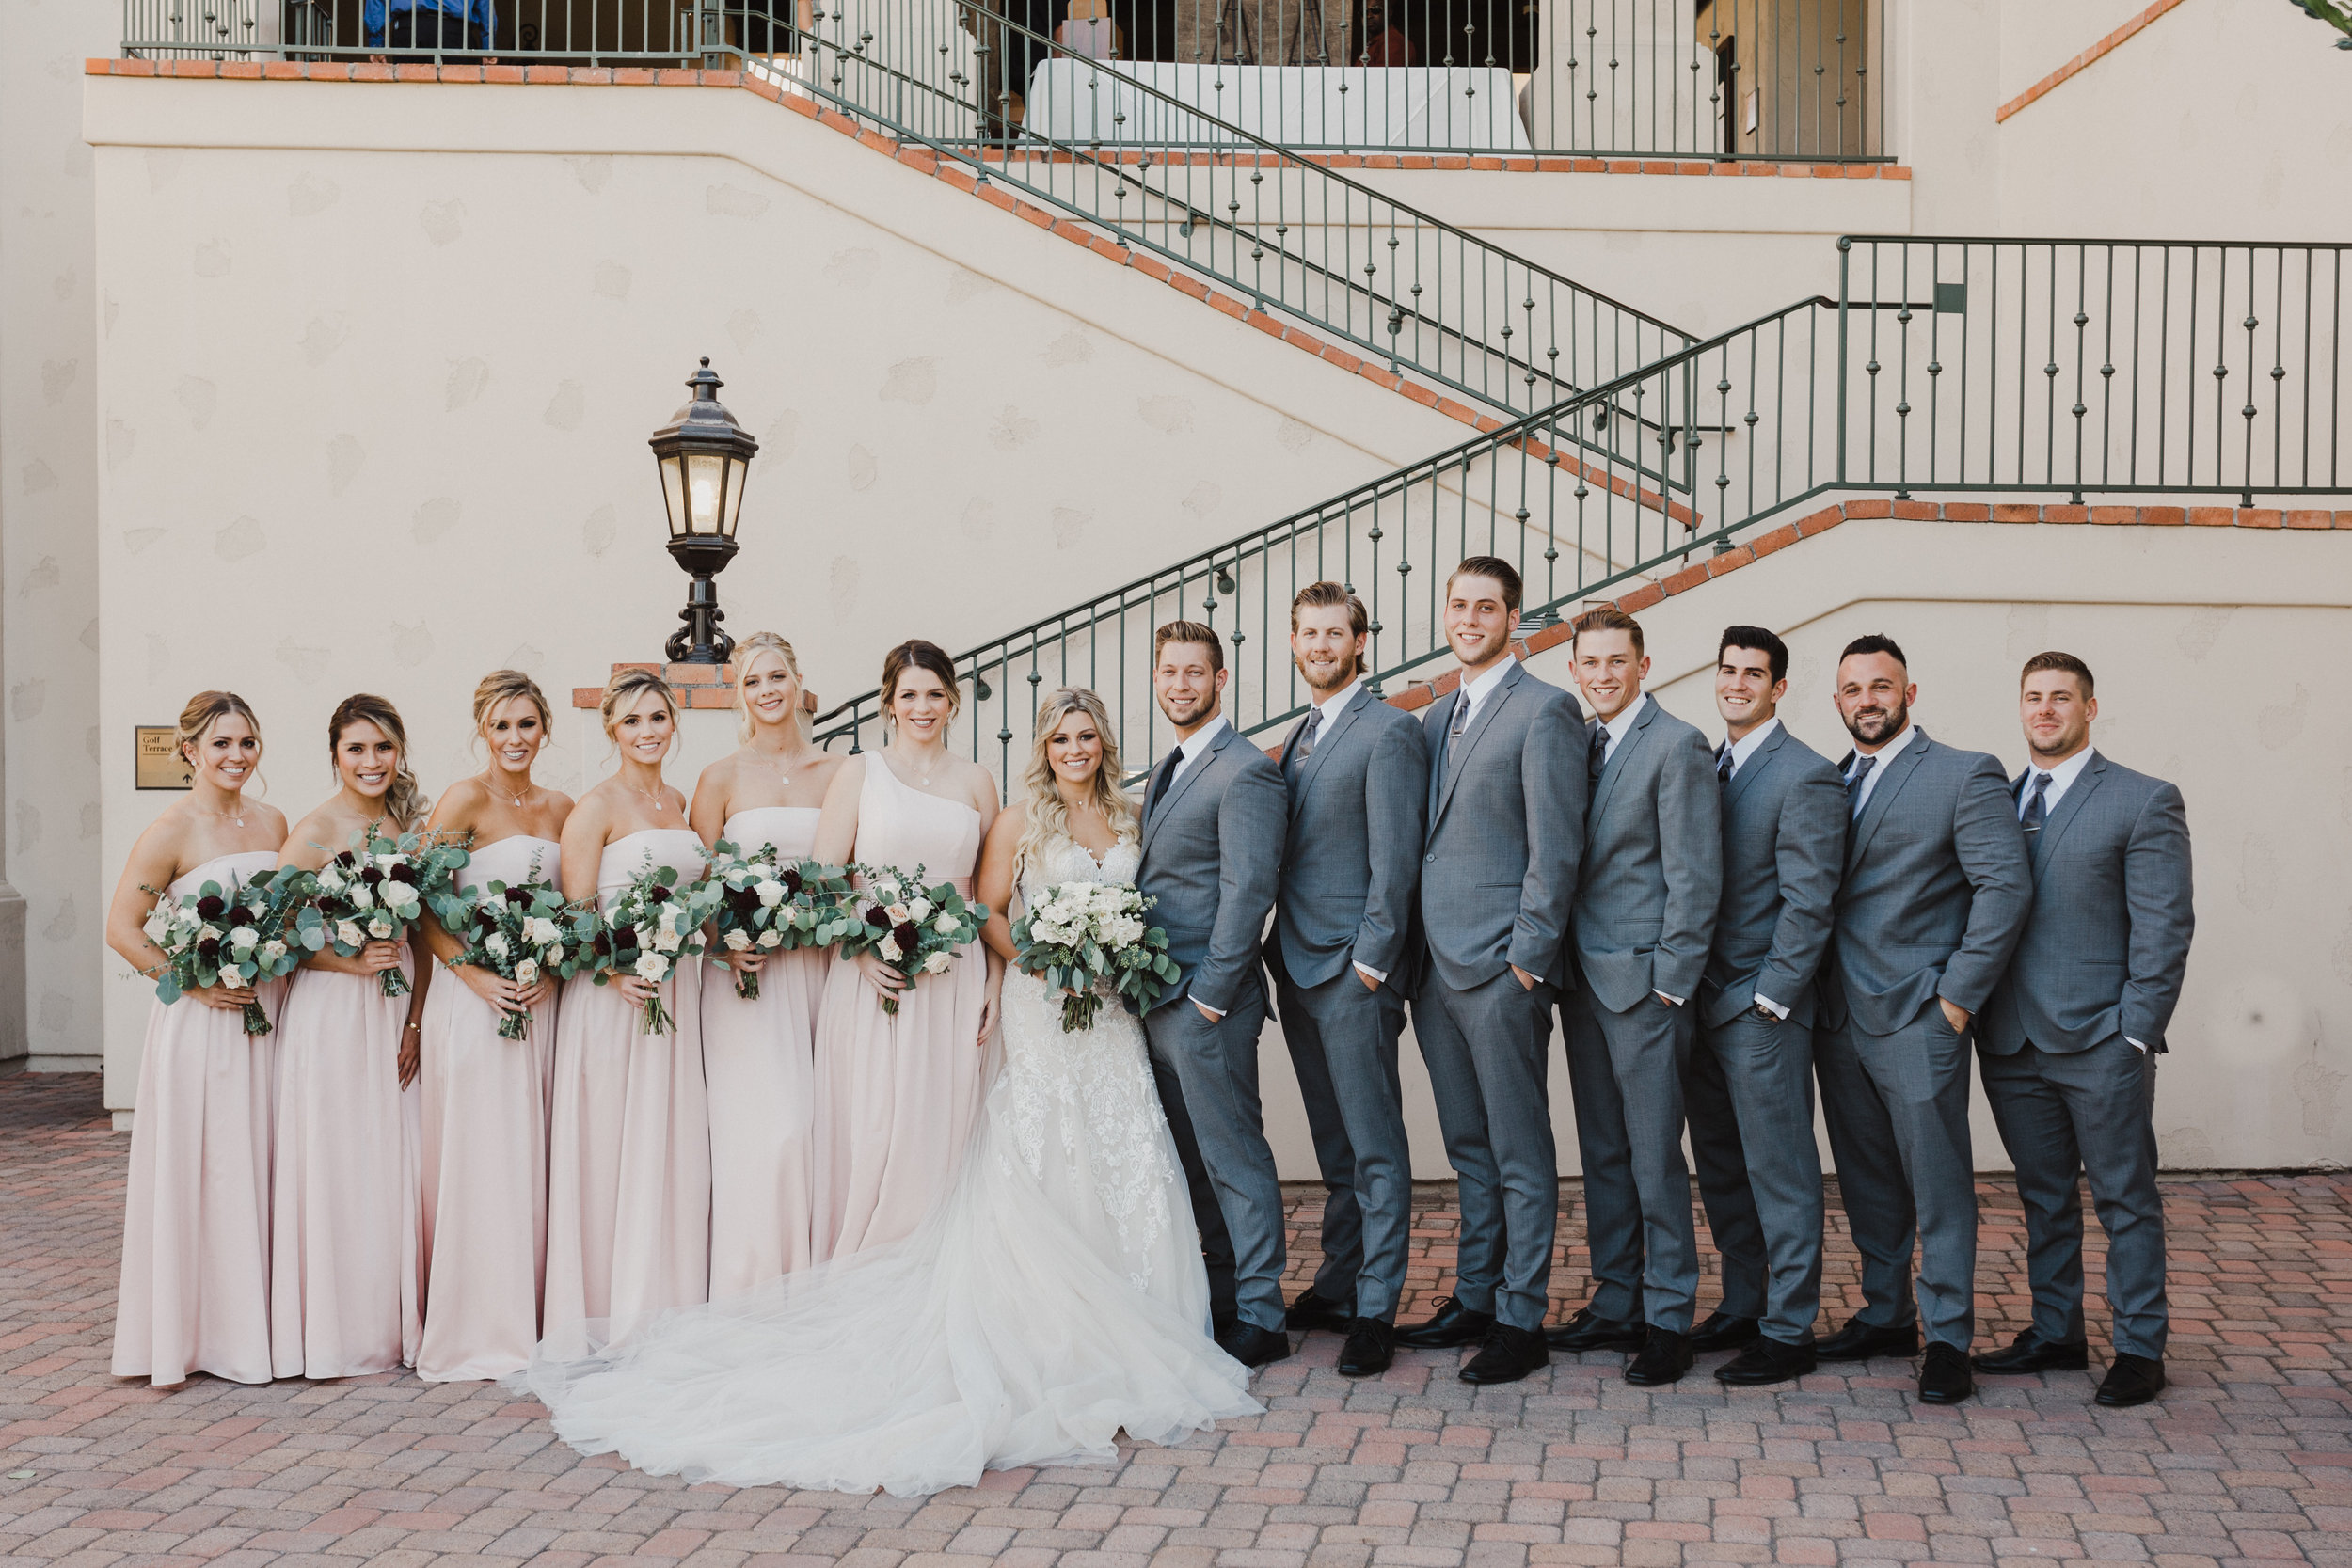 DianaLakePhoto-A+C-Wedding-BridalParty_01.jpg